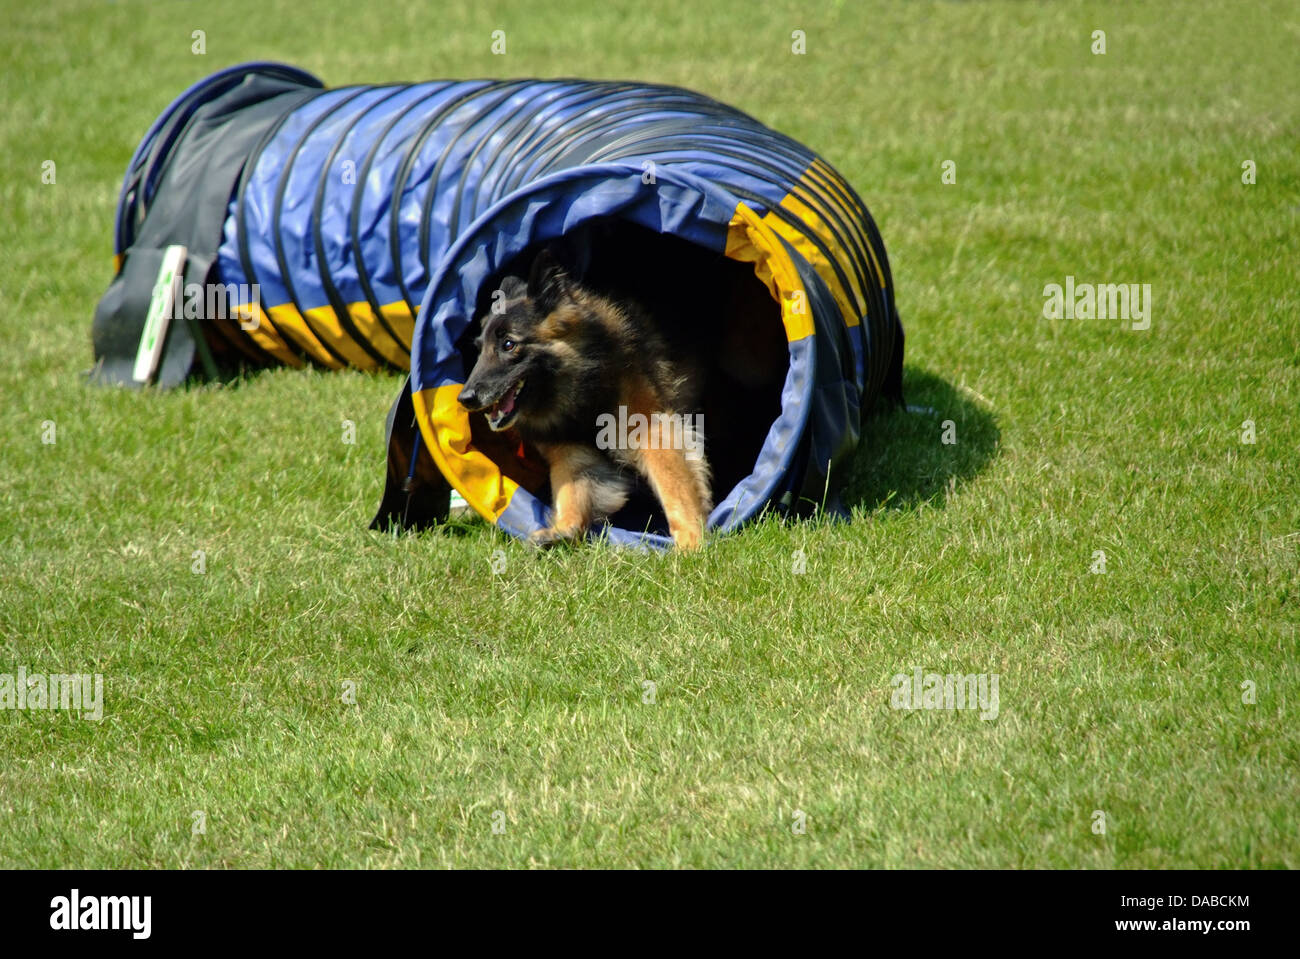 German Shepherd  coming out of Tunnel at Agility Dog Show - Stock Image